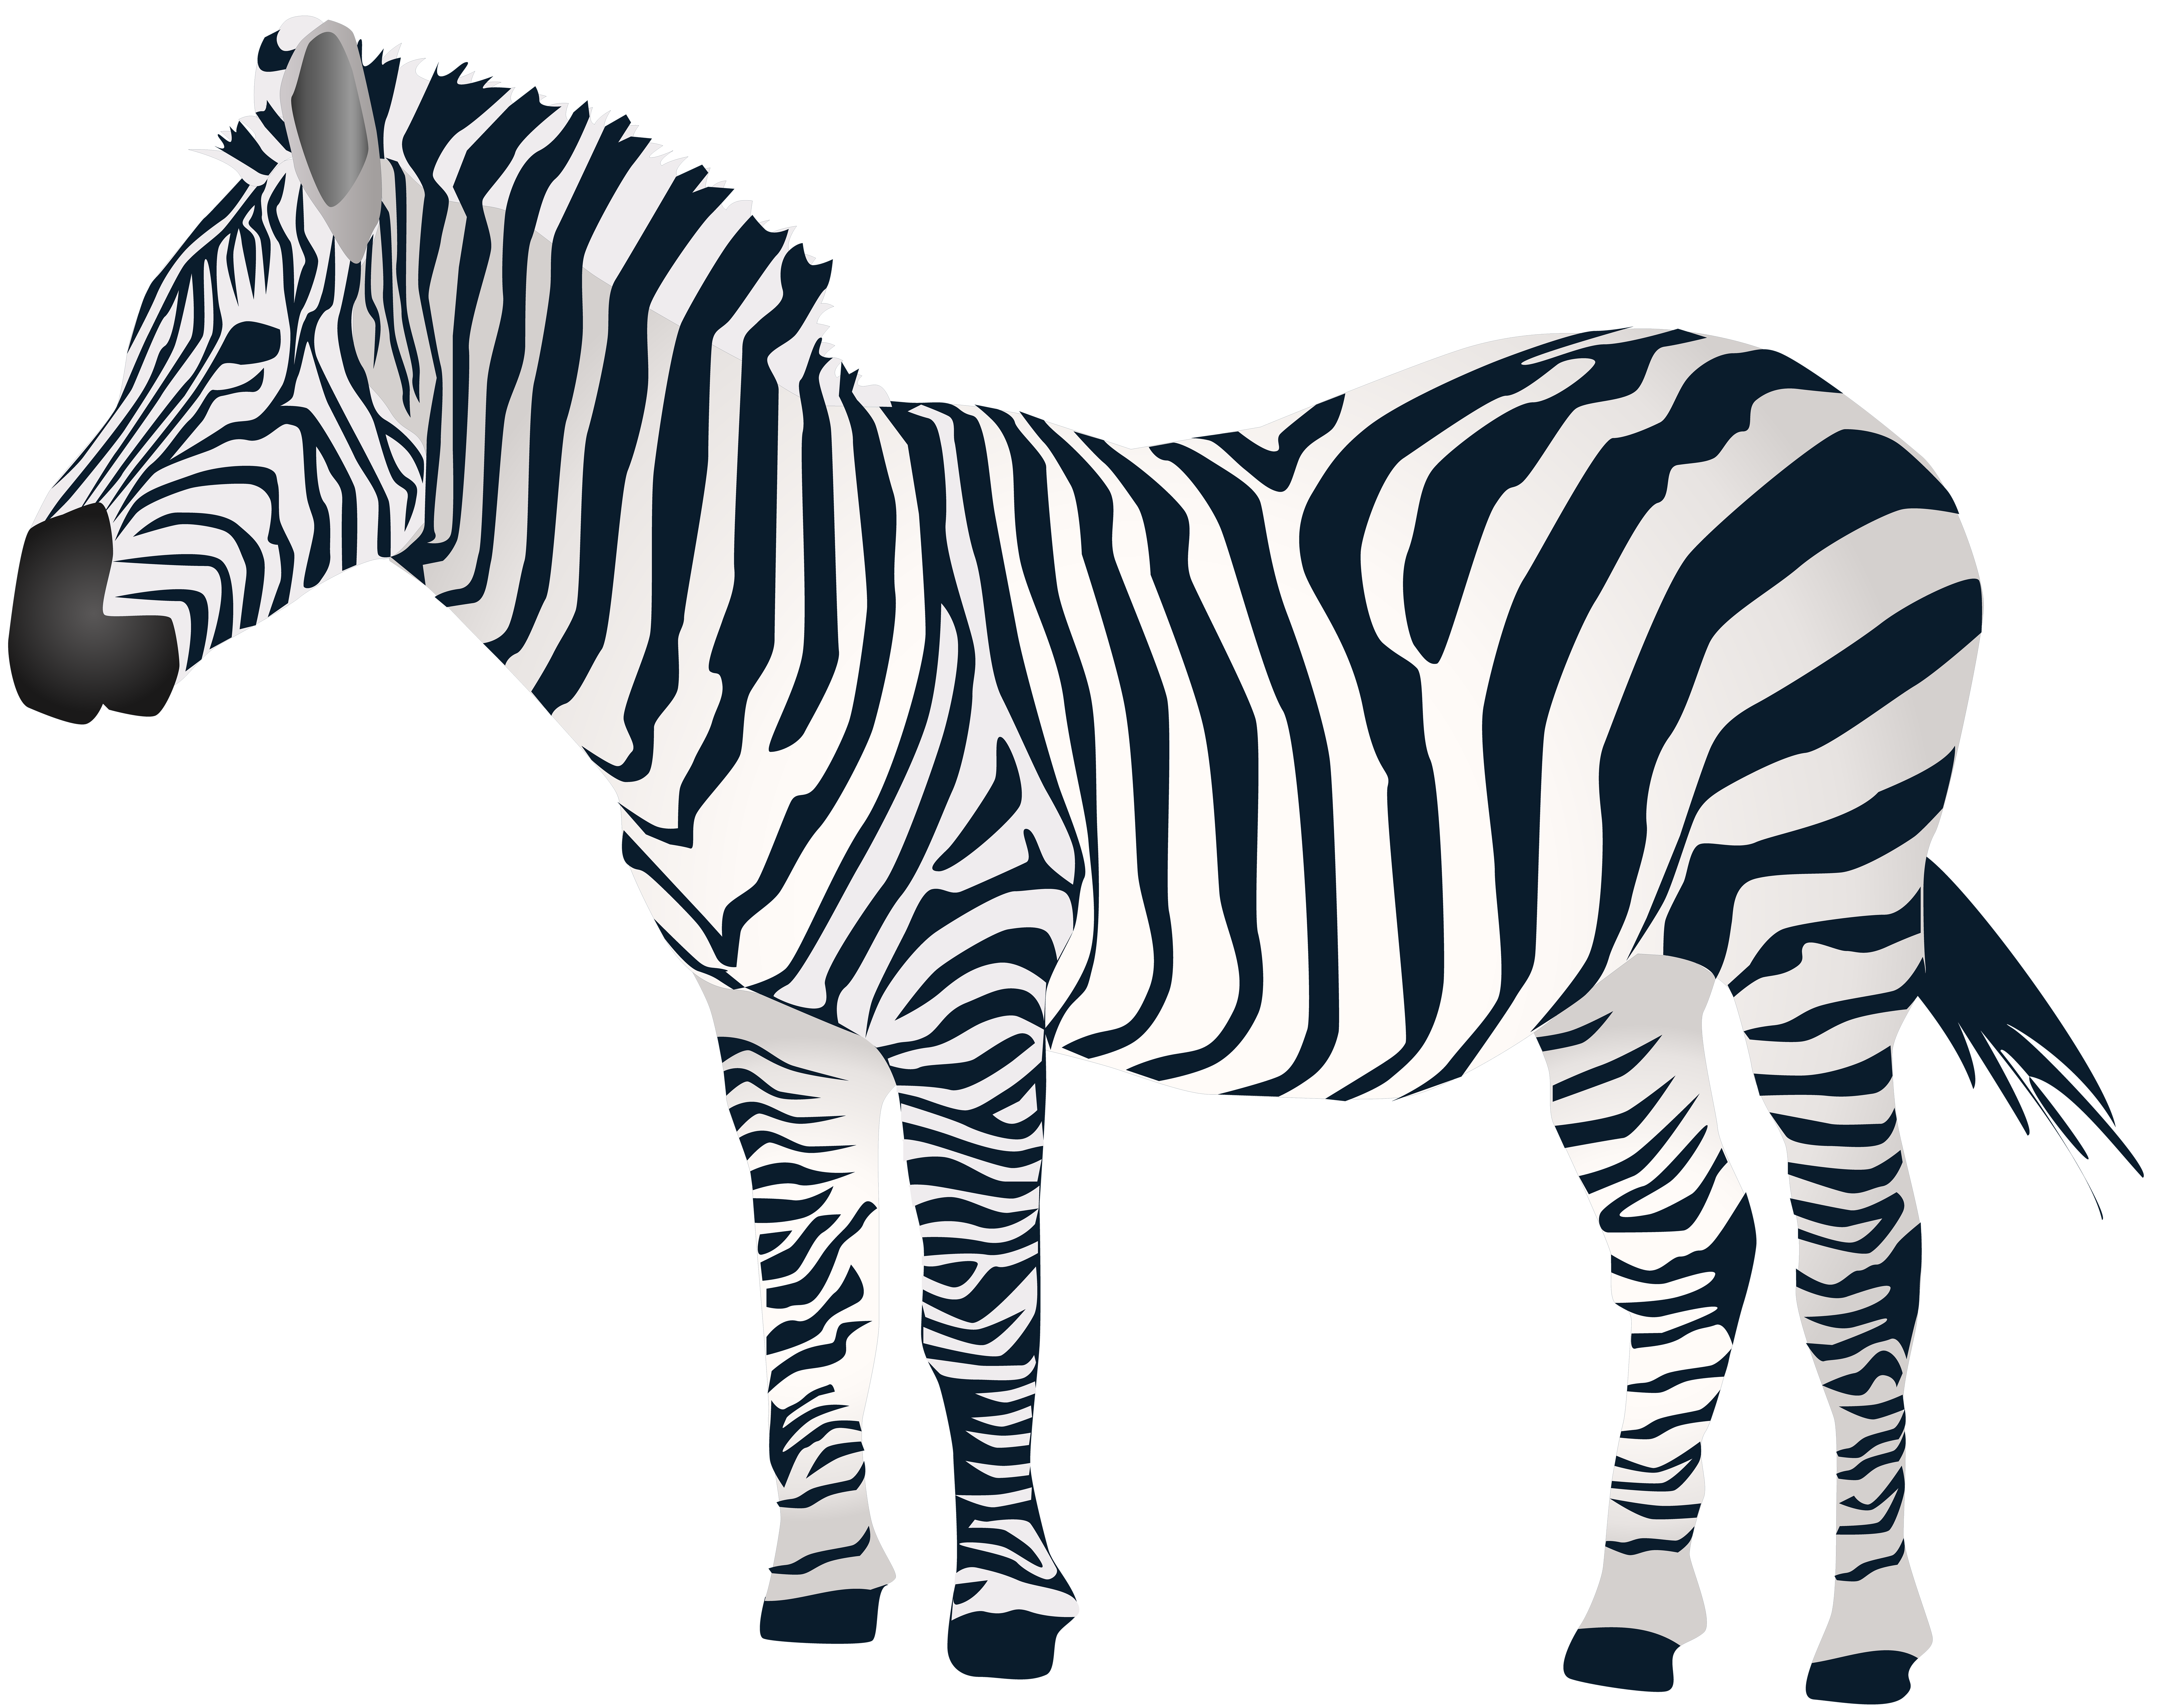 jpg black and white download Png clip art gallery. Zebra black and white clipart.